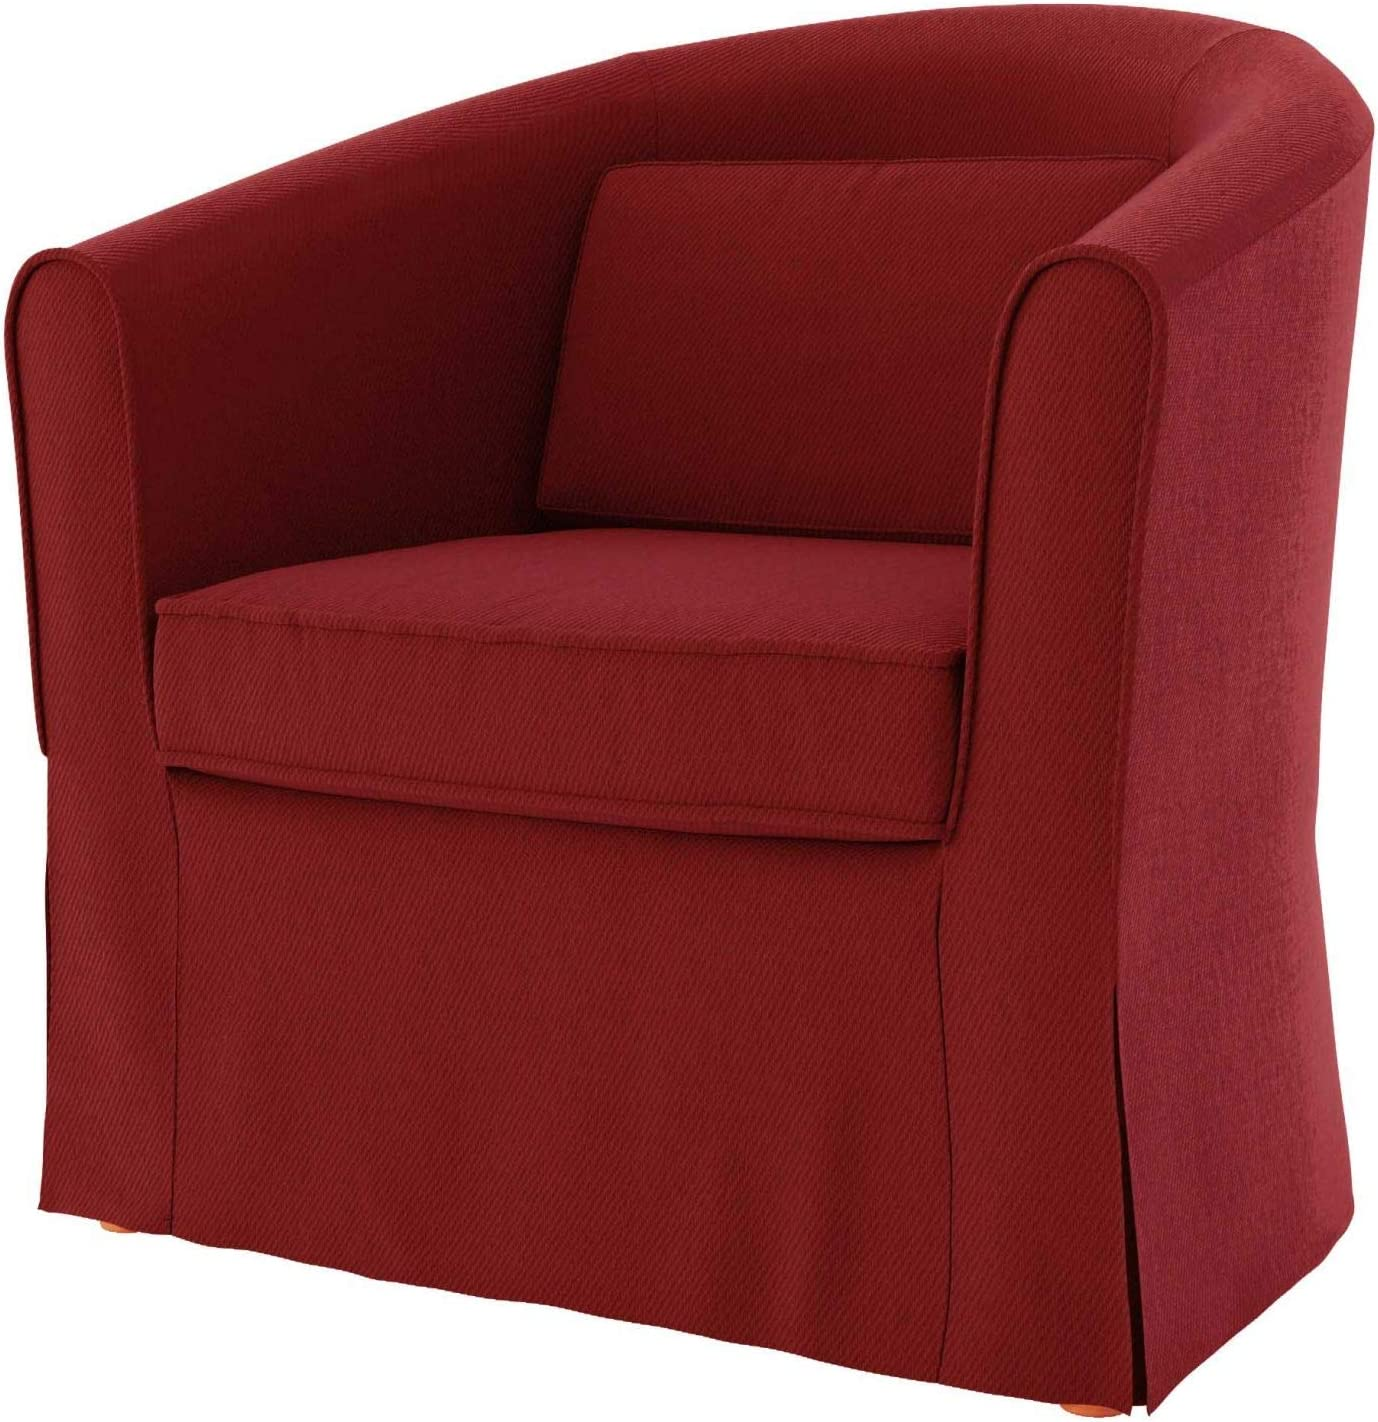 Amazon Com Tly Cotton Tullsta Armchair Cover For The Ikea Tullsta Chair Slipcover Replacement Cotton Red Home Kitchen